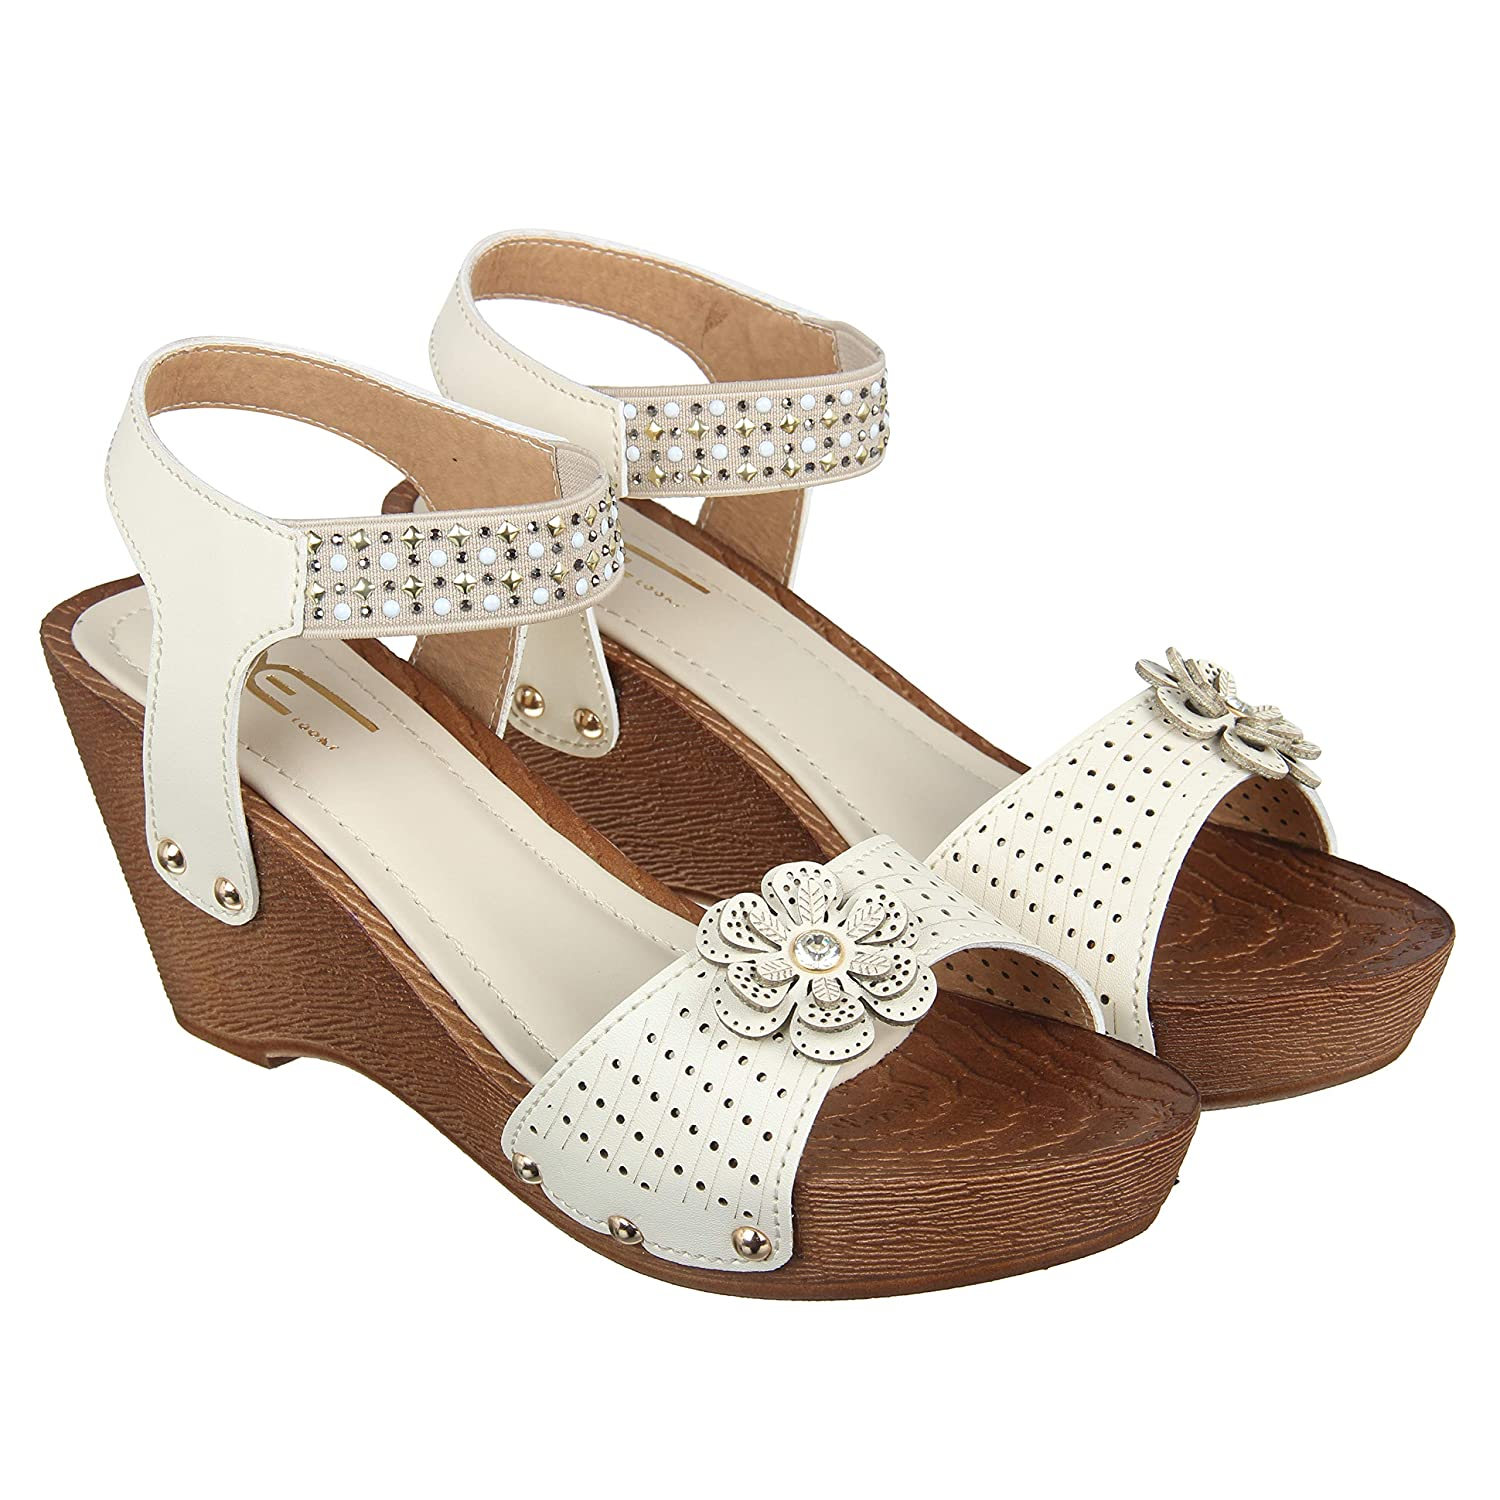 a44c0f78232 XE Looks Stylish Platform Heel Wedges Sandals for Women  Buy Online at Low  Prices in India - Amazon.in